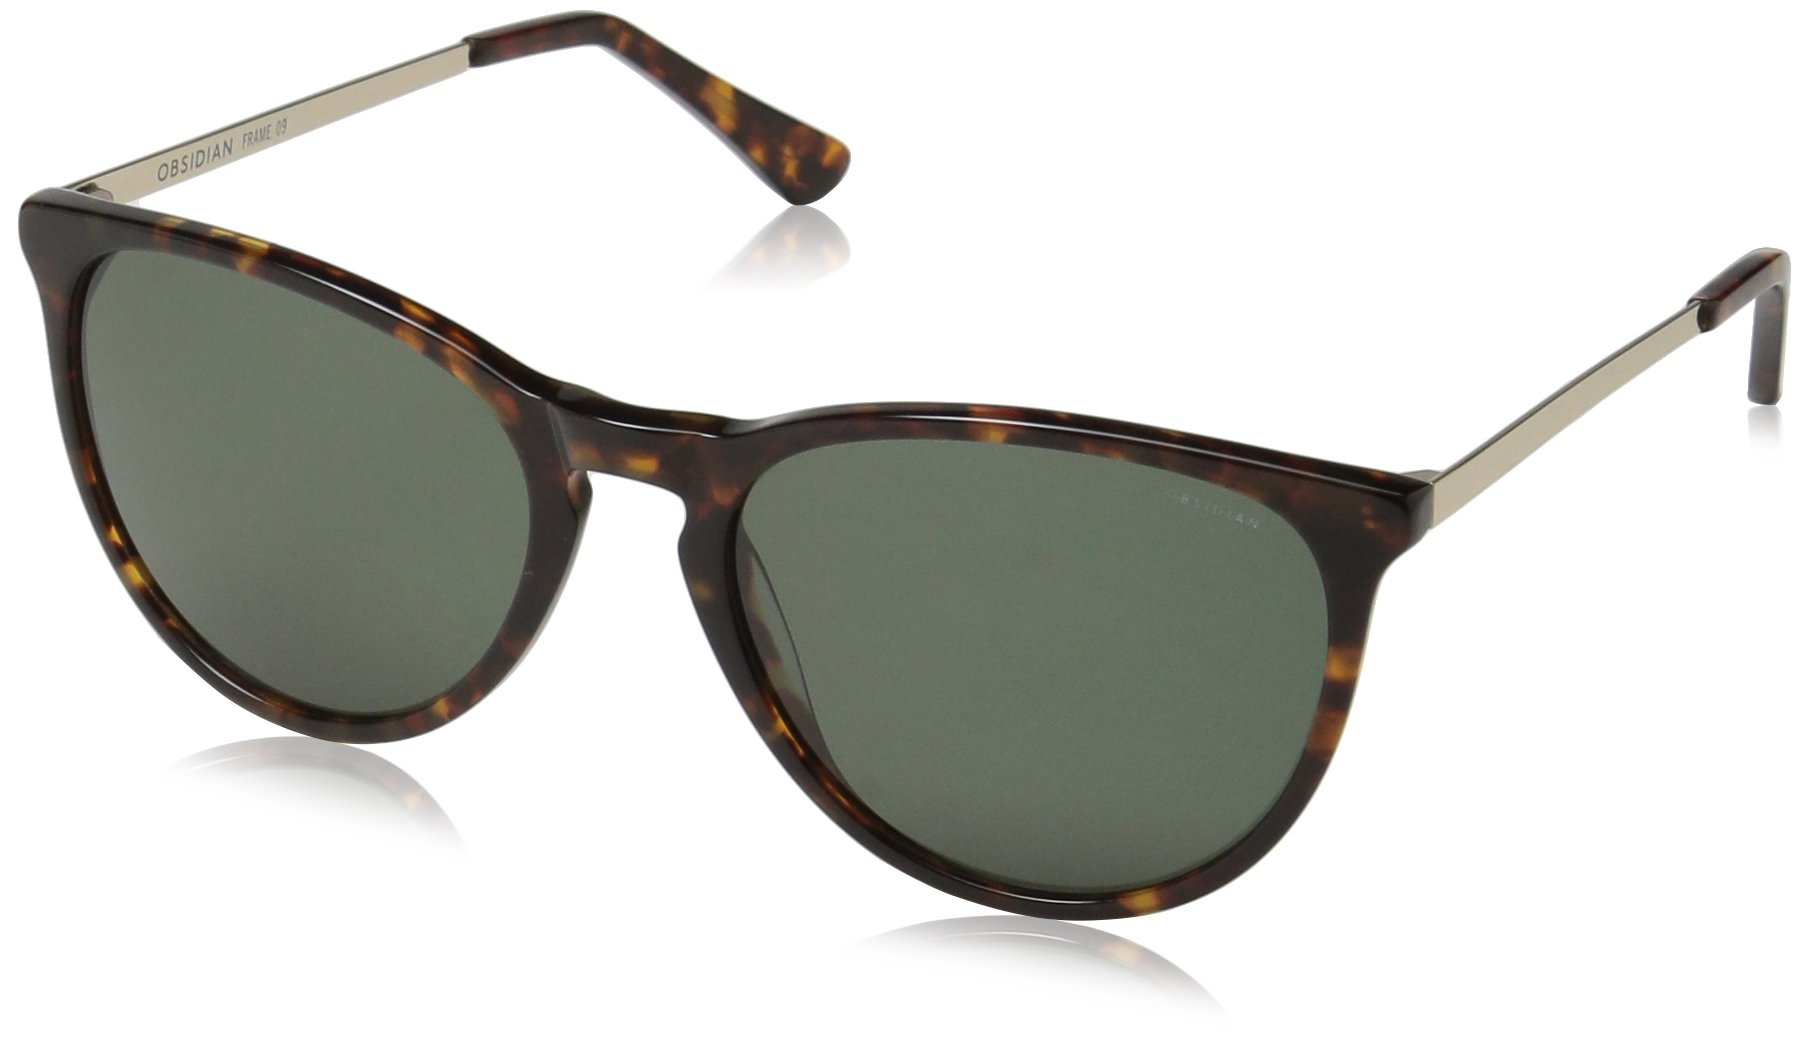 Obsidian Sunglasses for Women Fashion Round Frame 09, Tortoise/Gold, 54 mm